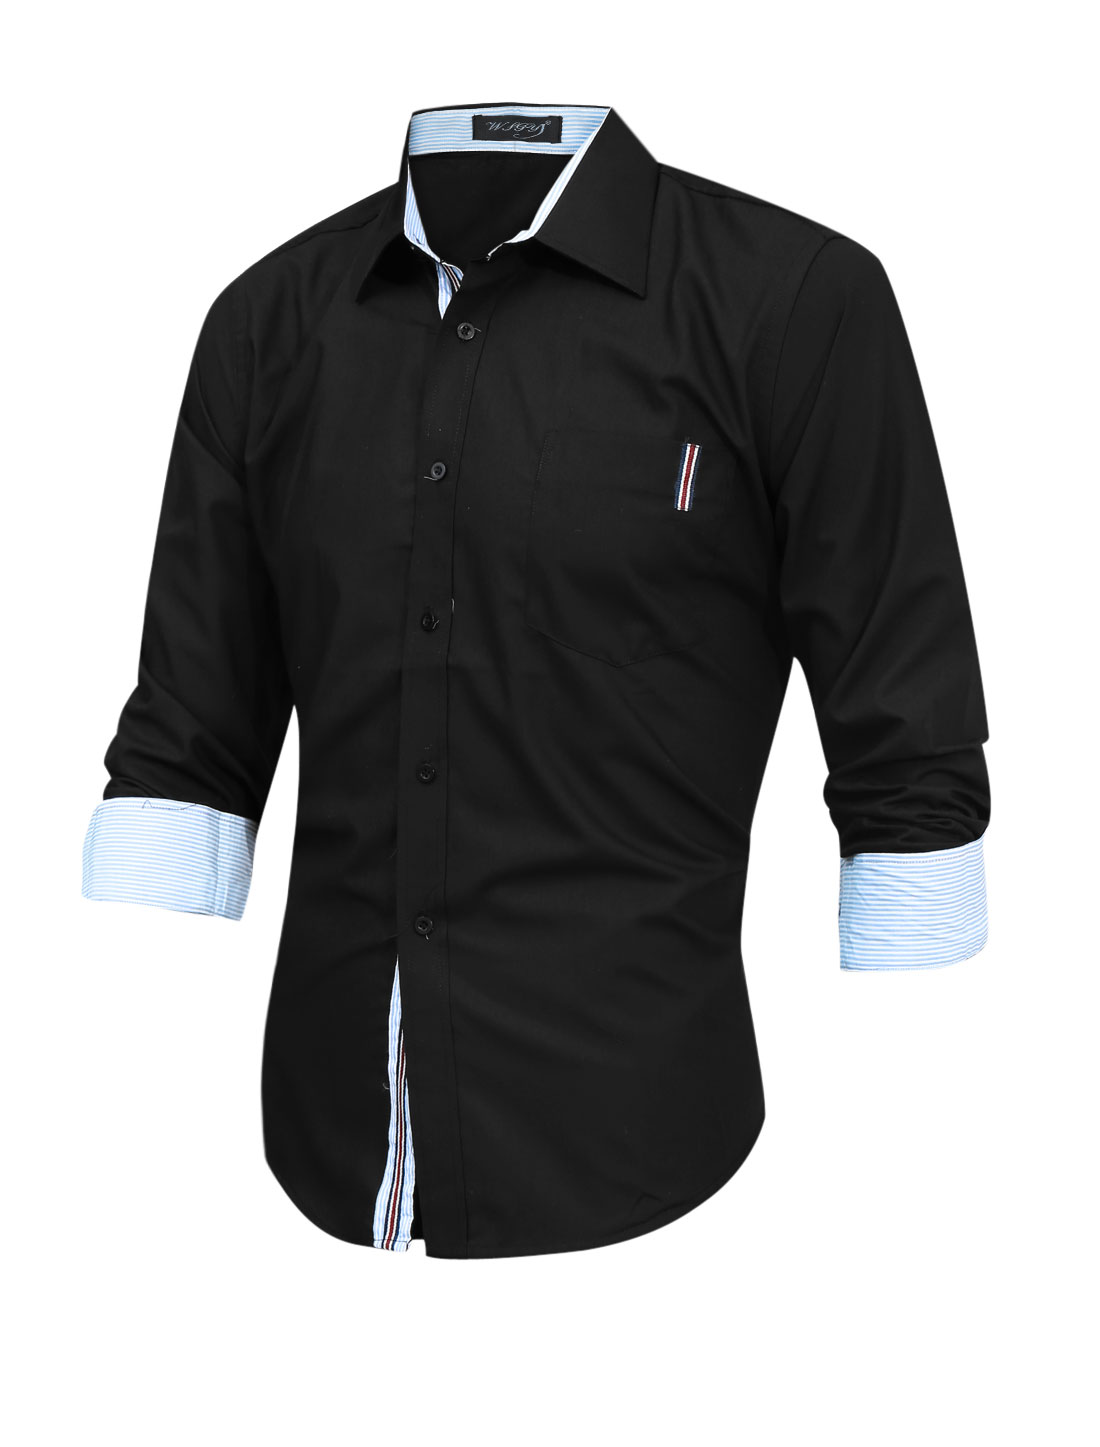 Men Point Collar One Pocket Chest Single Breasted Casual Shirt Black M